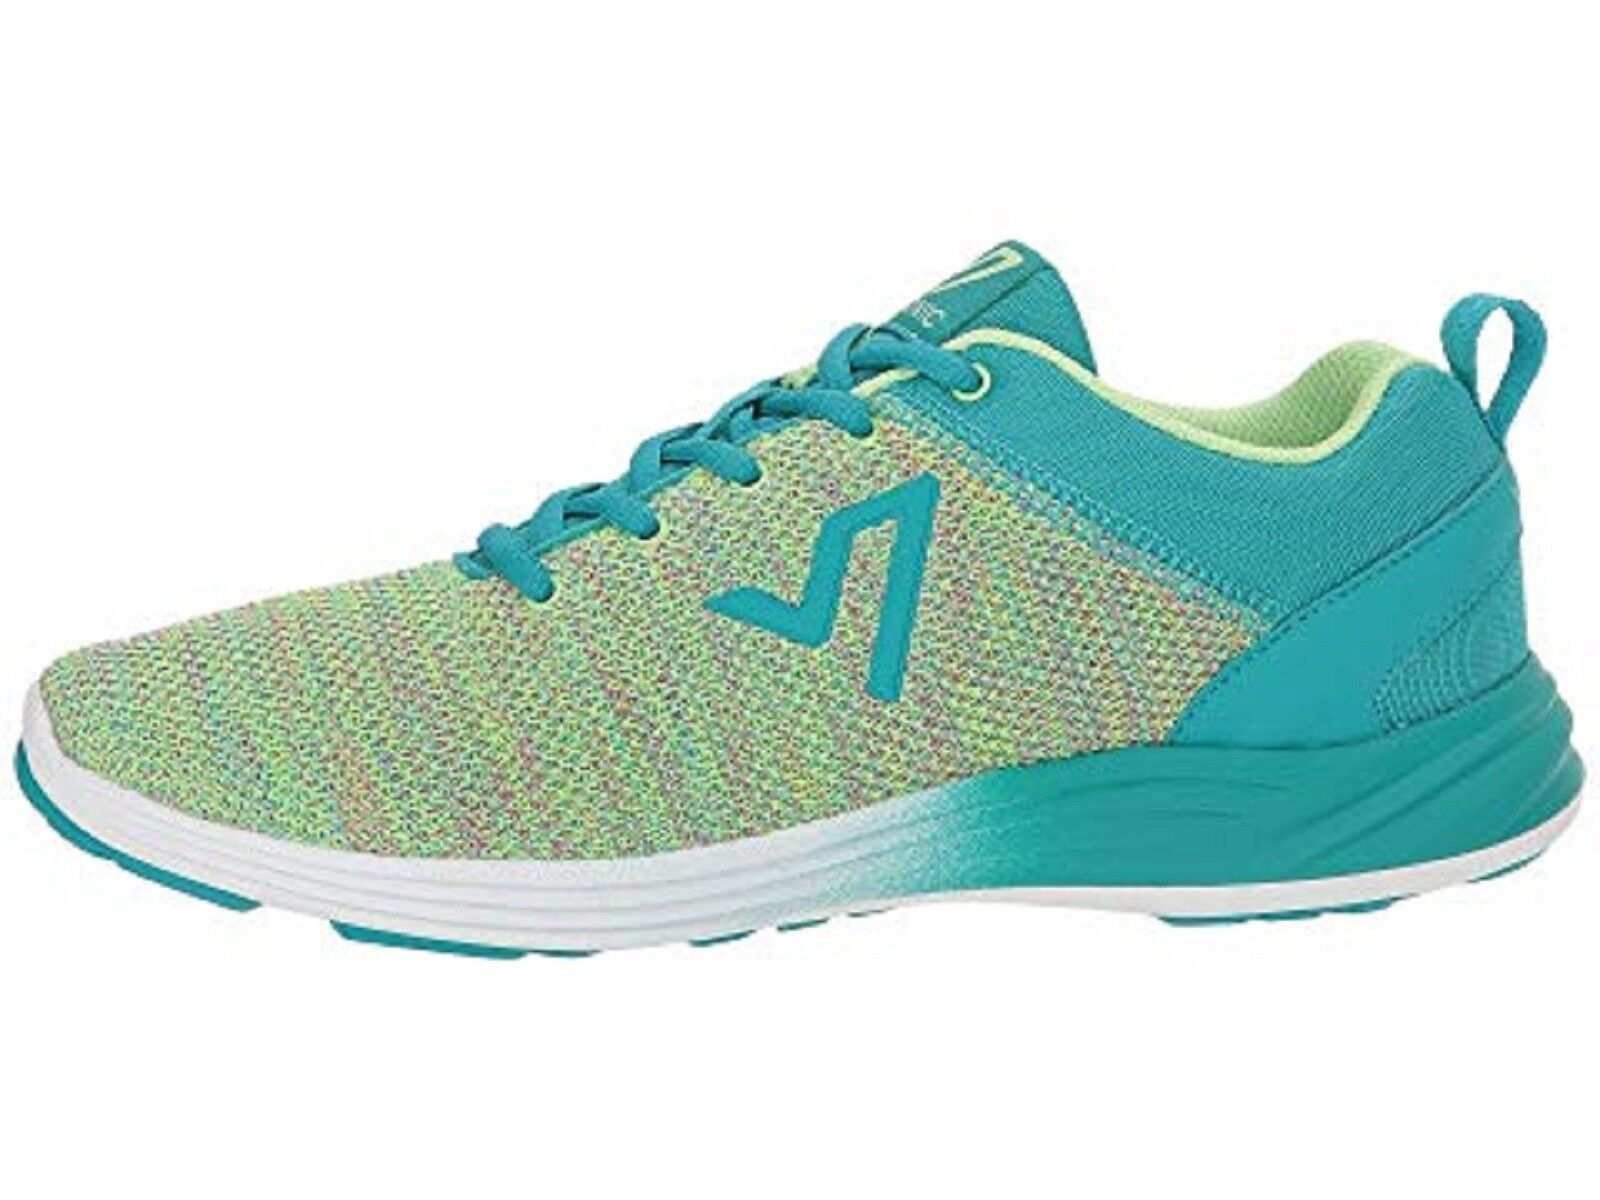 VIONIC Ladies AGILE ADLEY Lace-Up Knit Walking shoes TEAL MULTI MULTI MULTI Sz. 9.5  WIDE NIB f01ae1